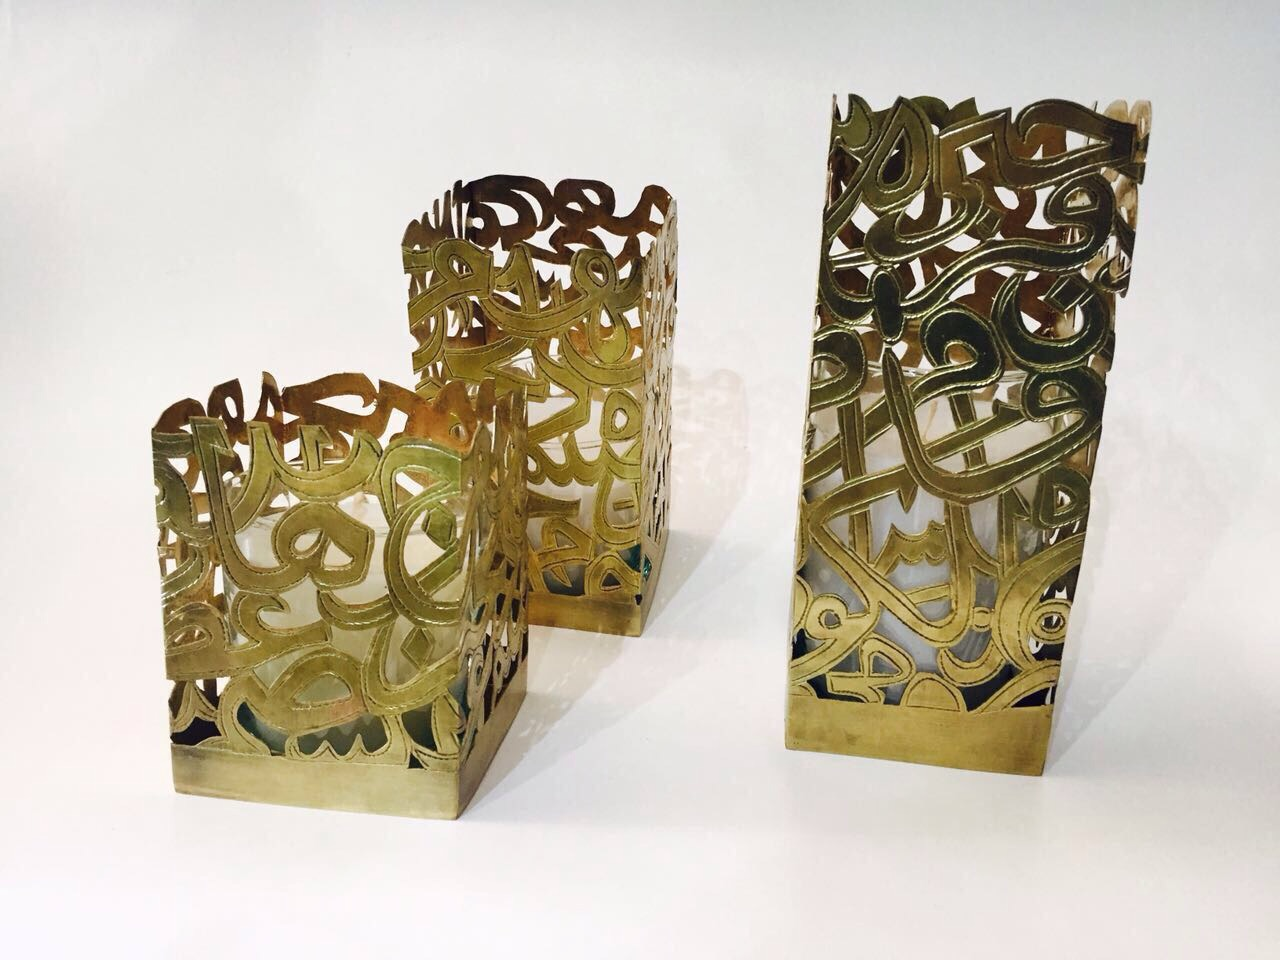 Three Unique Candle With Arabic letters